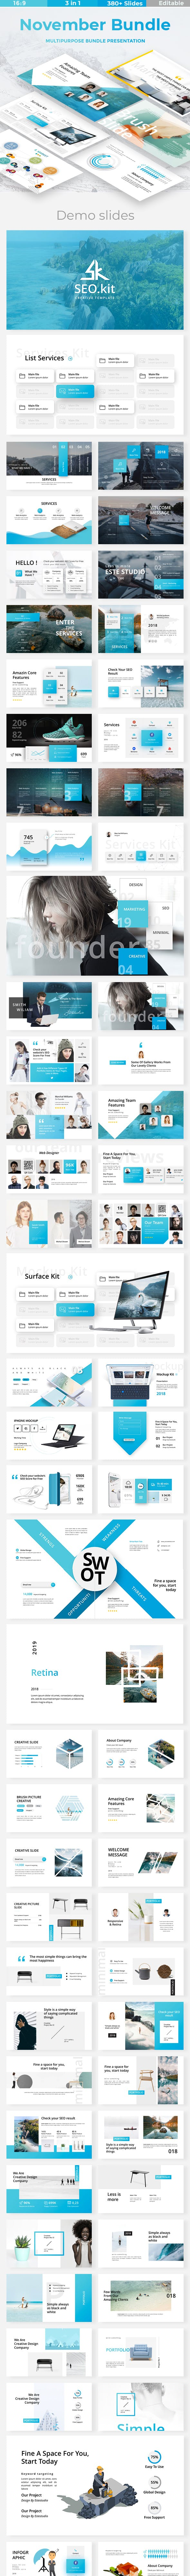 november bundle 3 in1 business powerpoint template by este studio